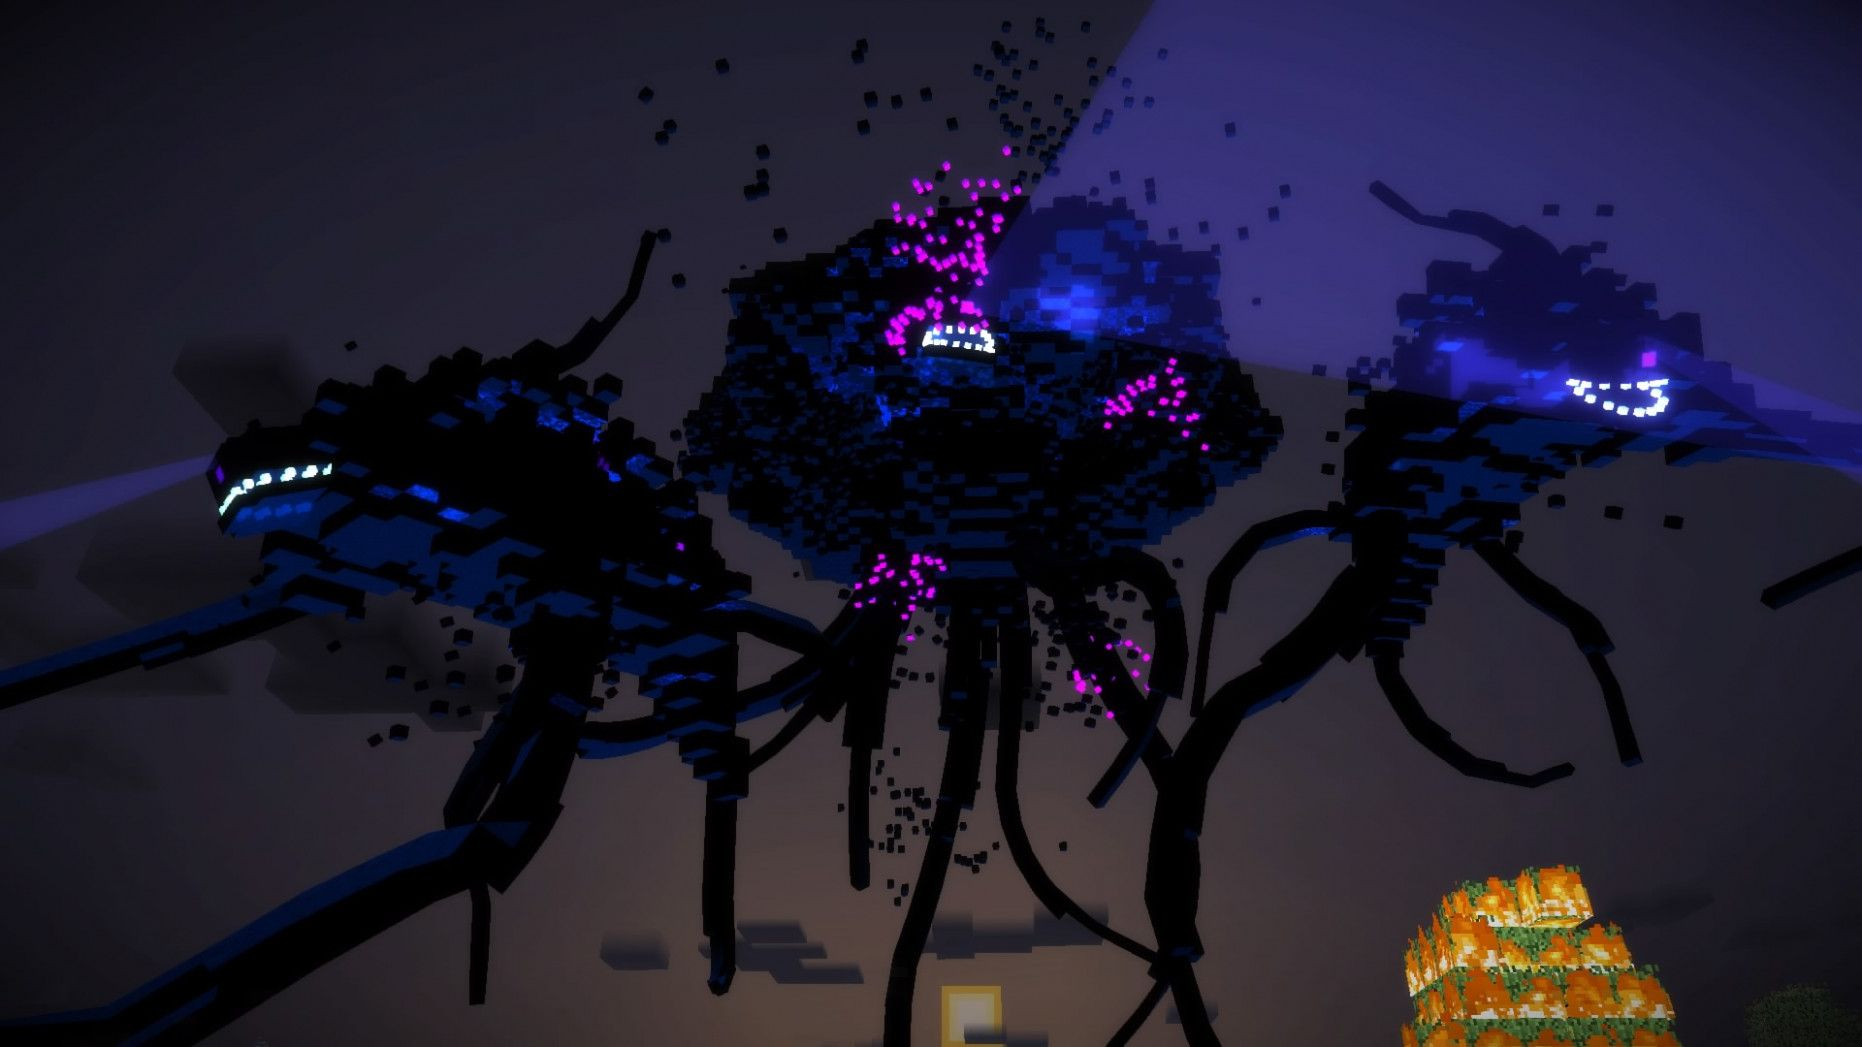 I Will Tell You The Truth About Wither Storm Minecraft Coloring Pages In The Next 20 Seconds Coloring In 2020 Minecraft Coloring Pages Coloring Pages Line Artwork